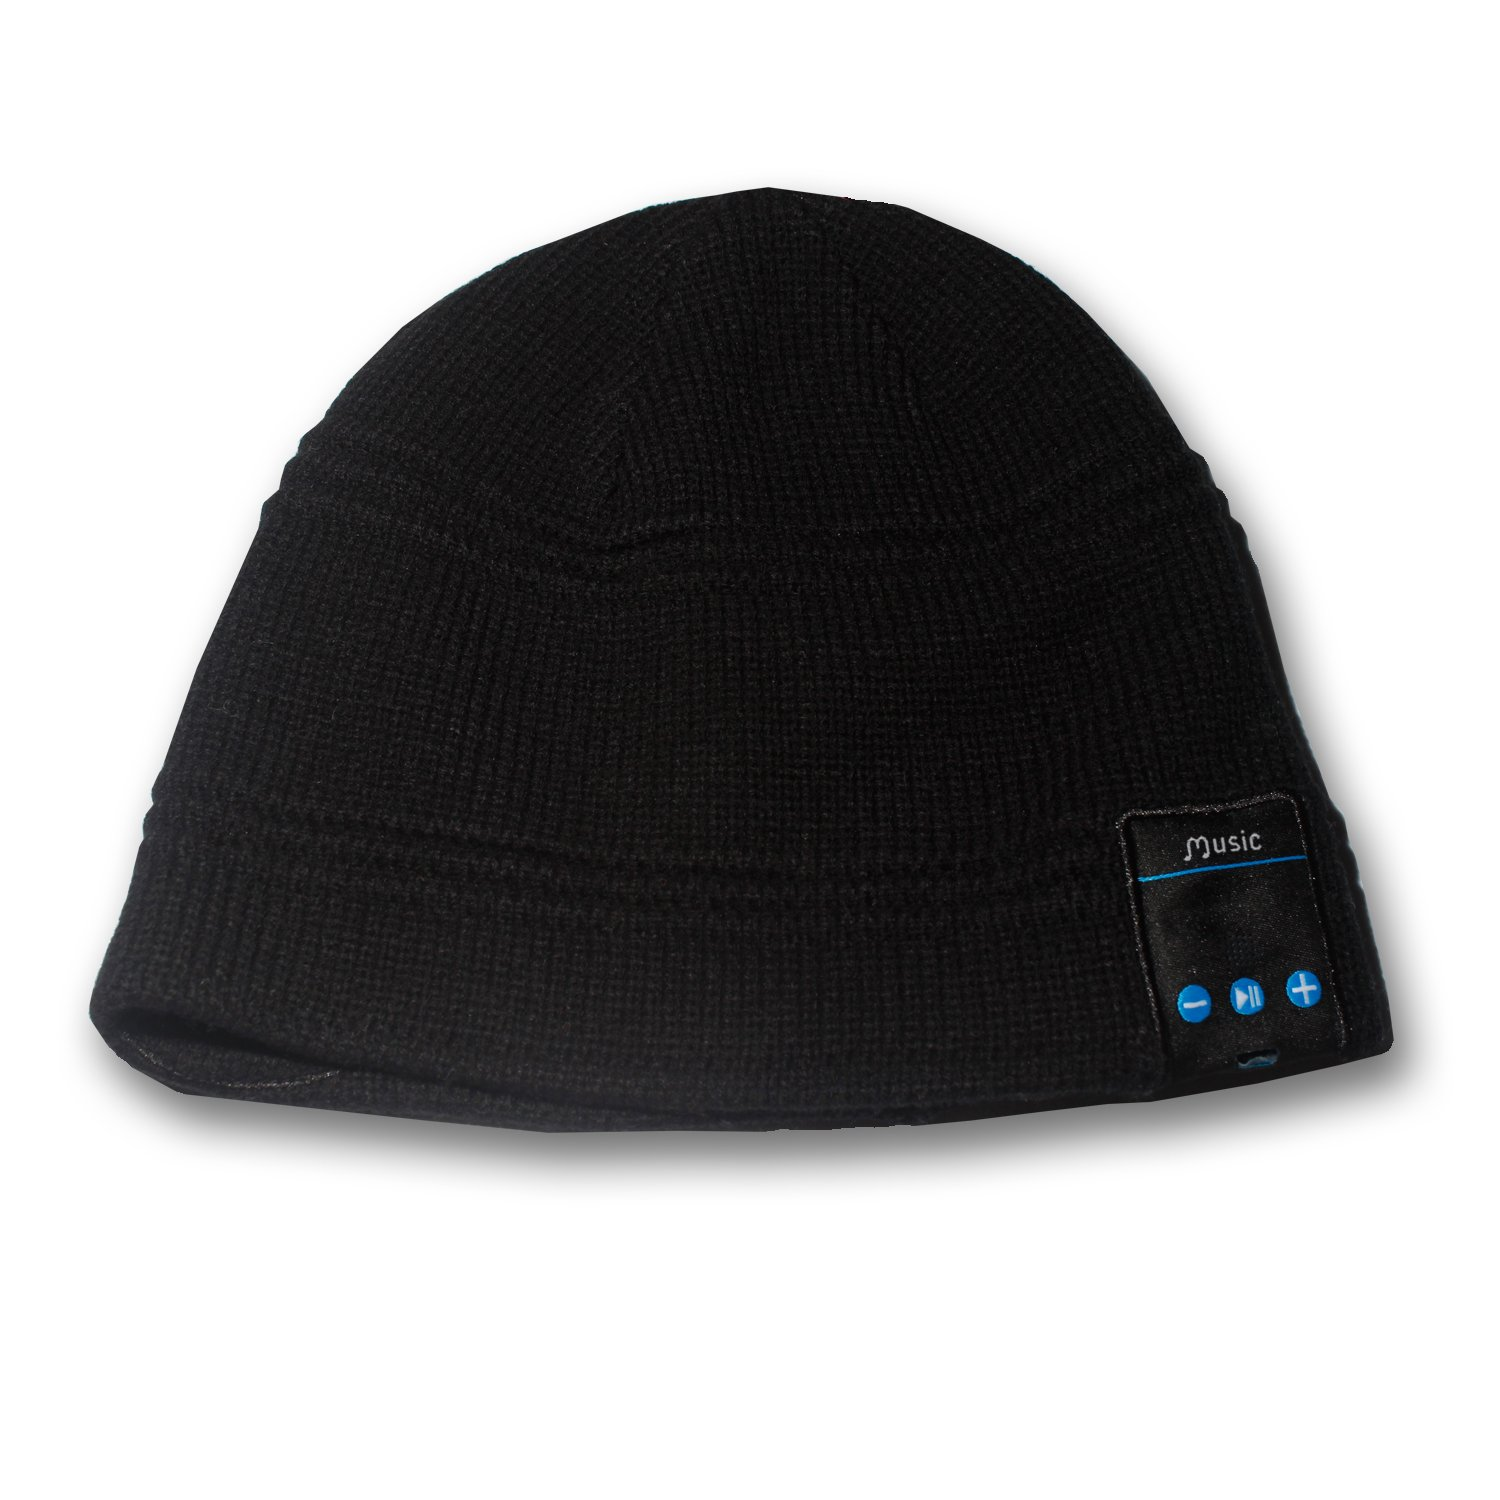 Rotibox Wireless Bluetooth Beanie Hat Cap with Musicphone ...